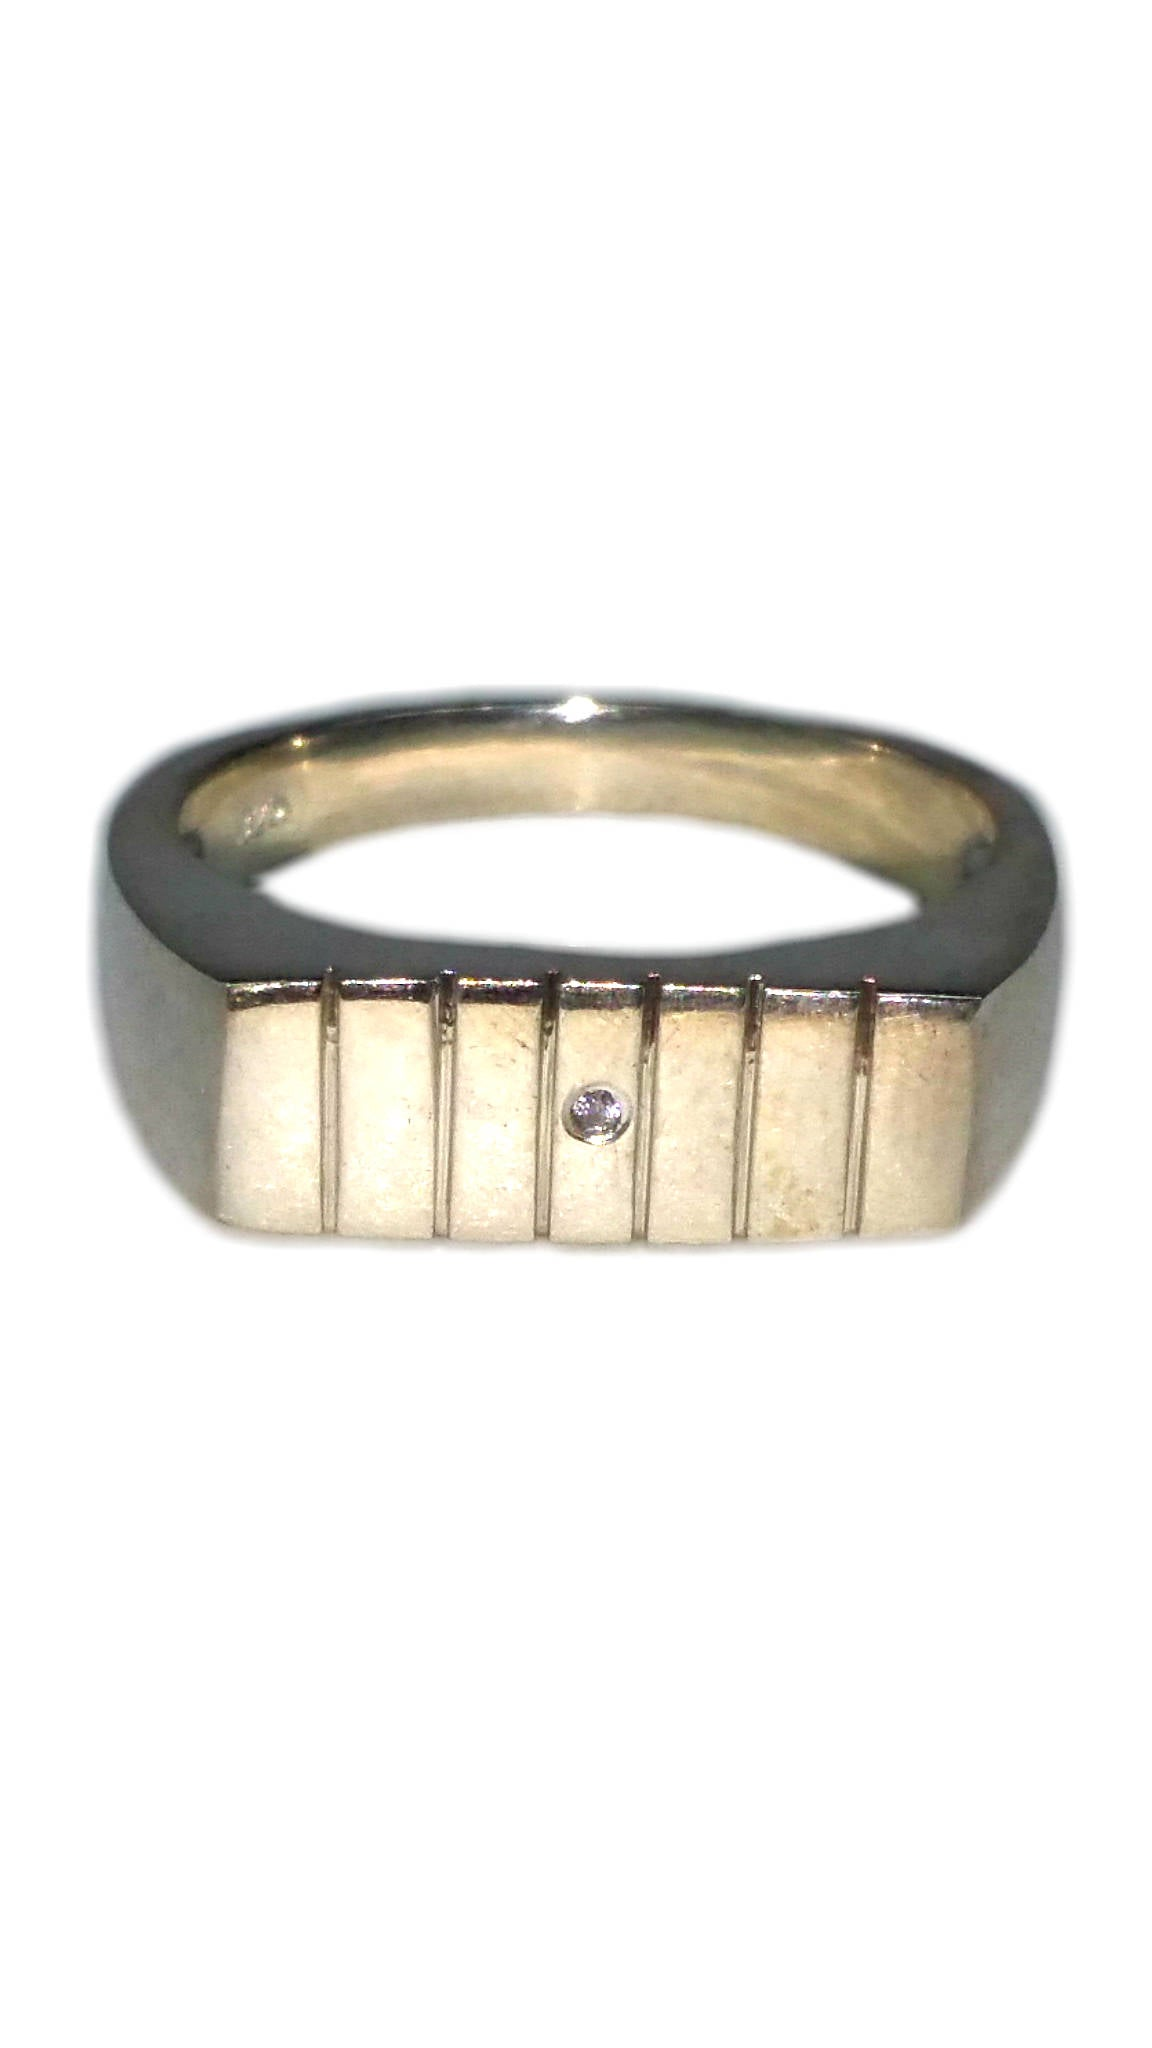 Custom Sterling Silver Ring - Square [13]